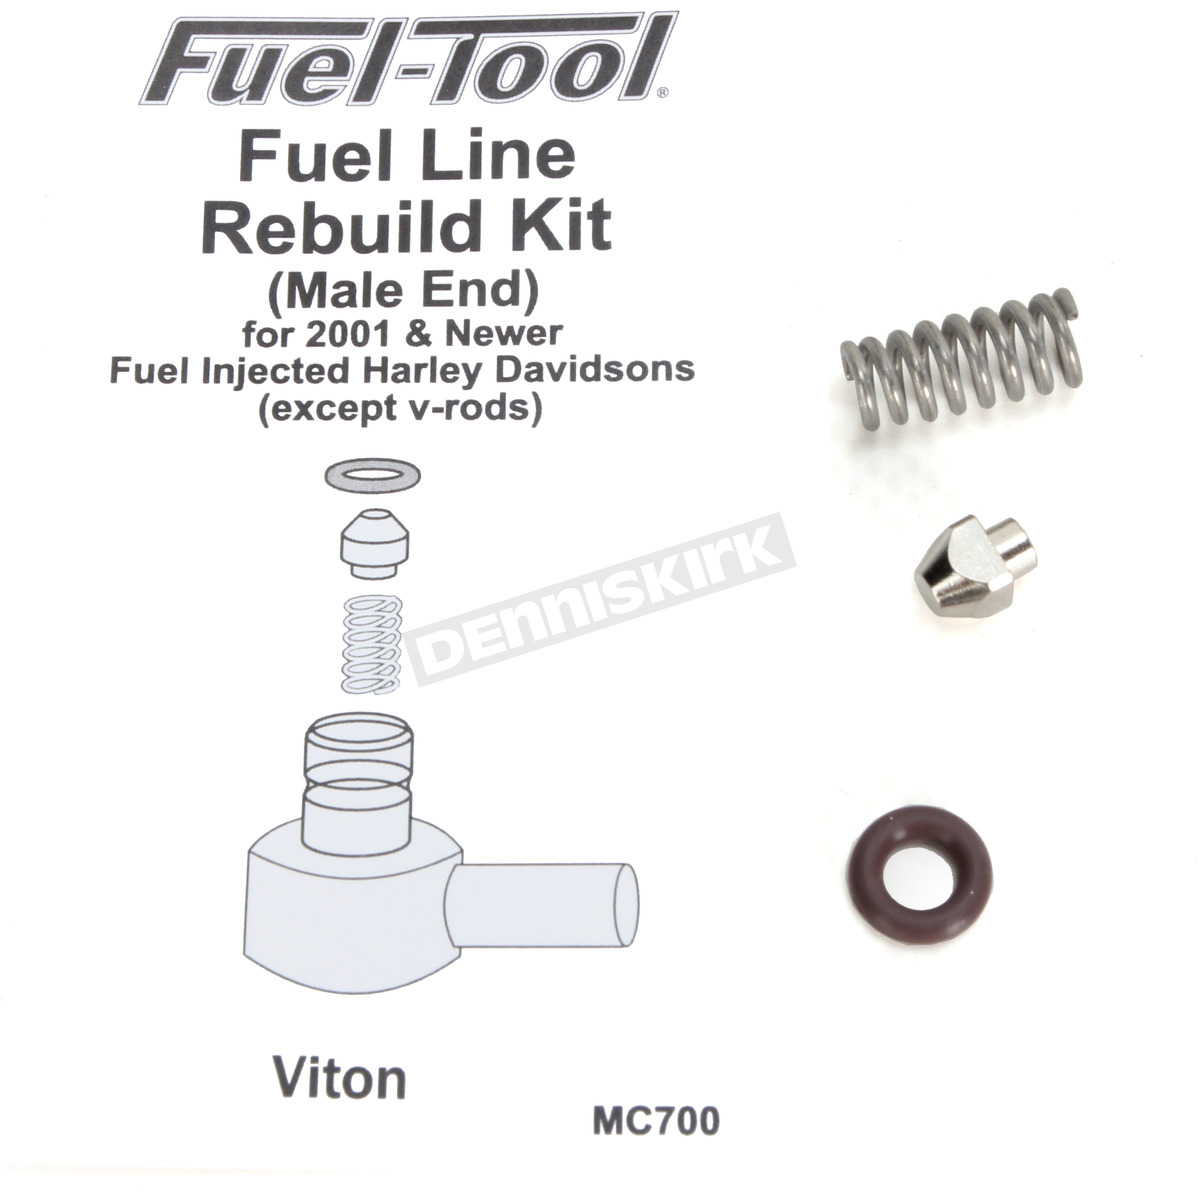 fuel-tool fuel line male end rebuild kit